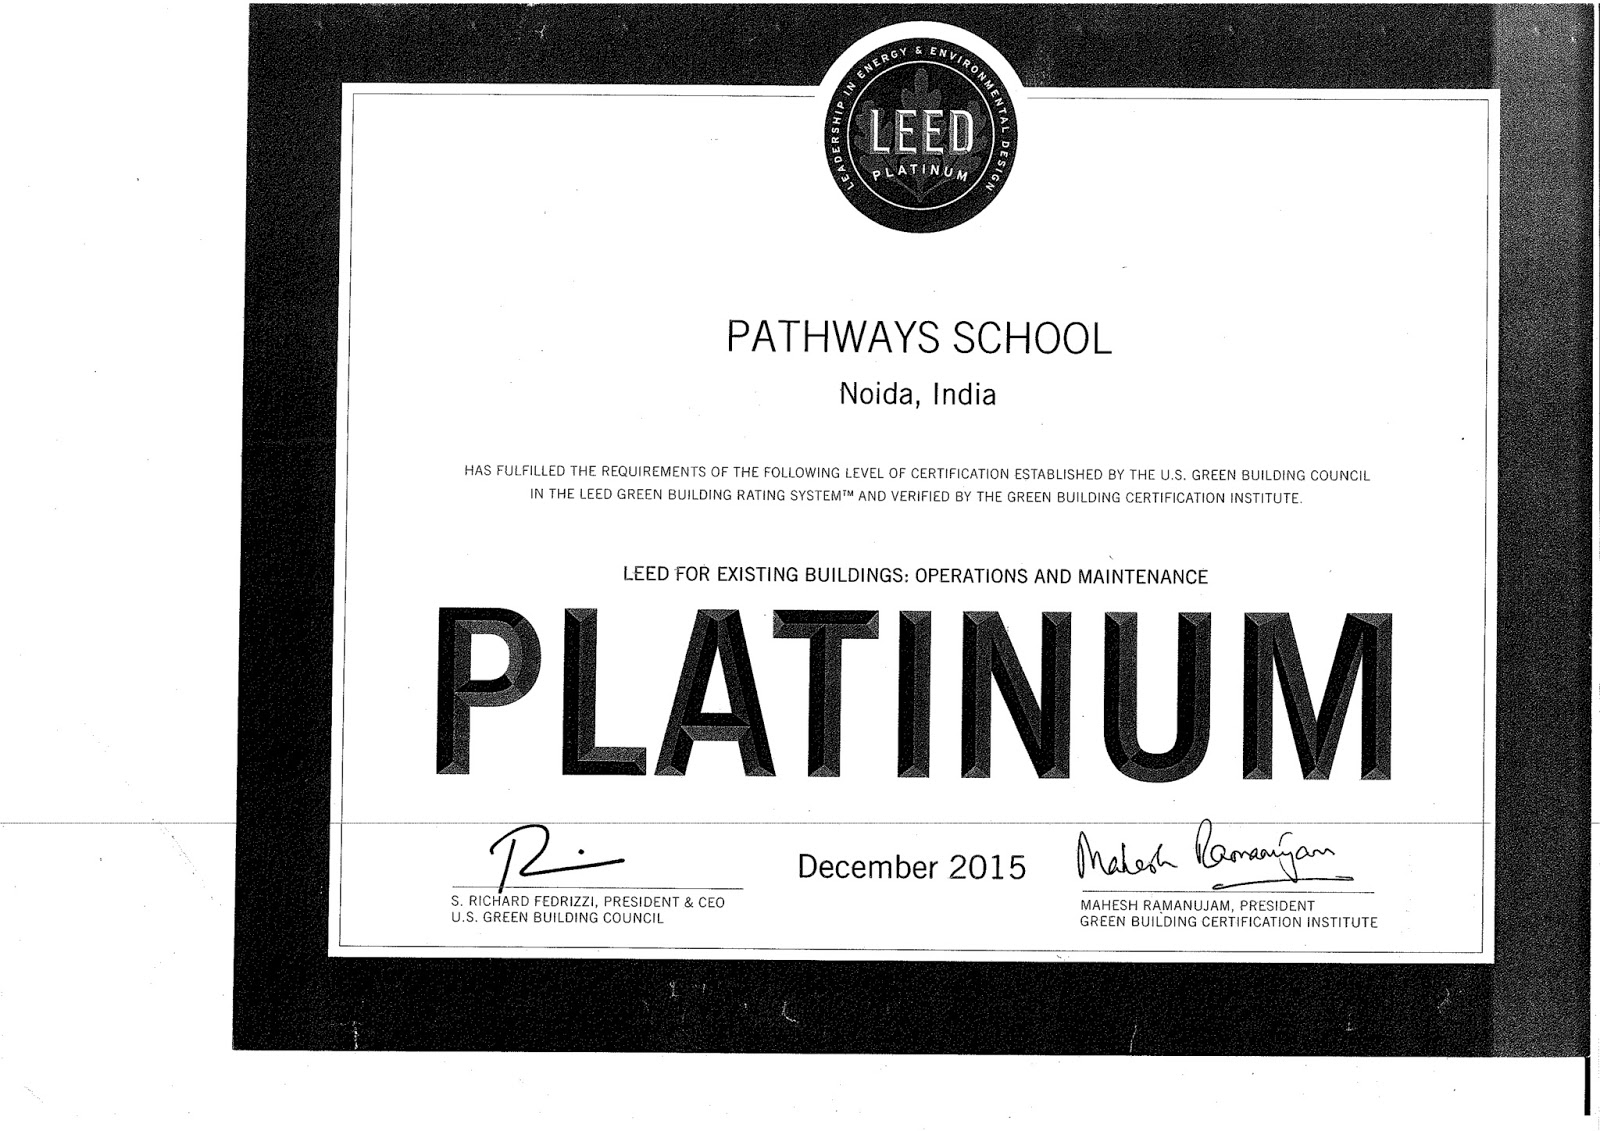 Pathways school noida february 2016 the pathways schools are a landmark in living the idea of energy conservation and green technology we were recently awarded the leed green certification xflitez Image collections